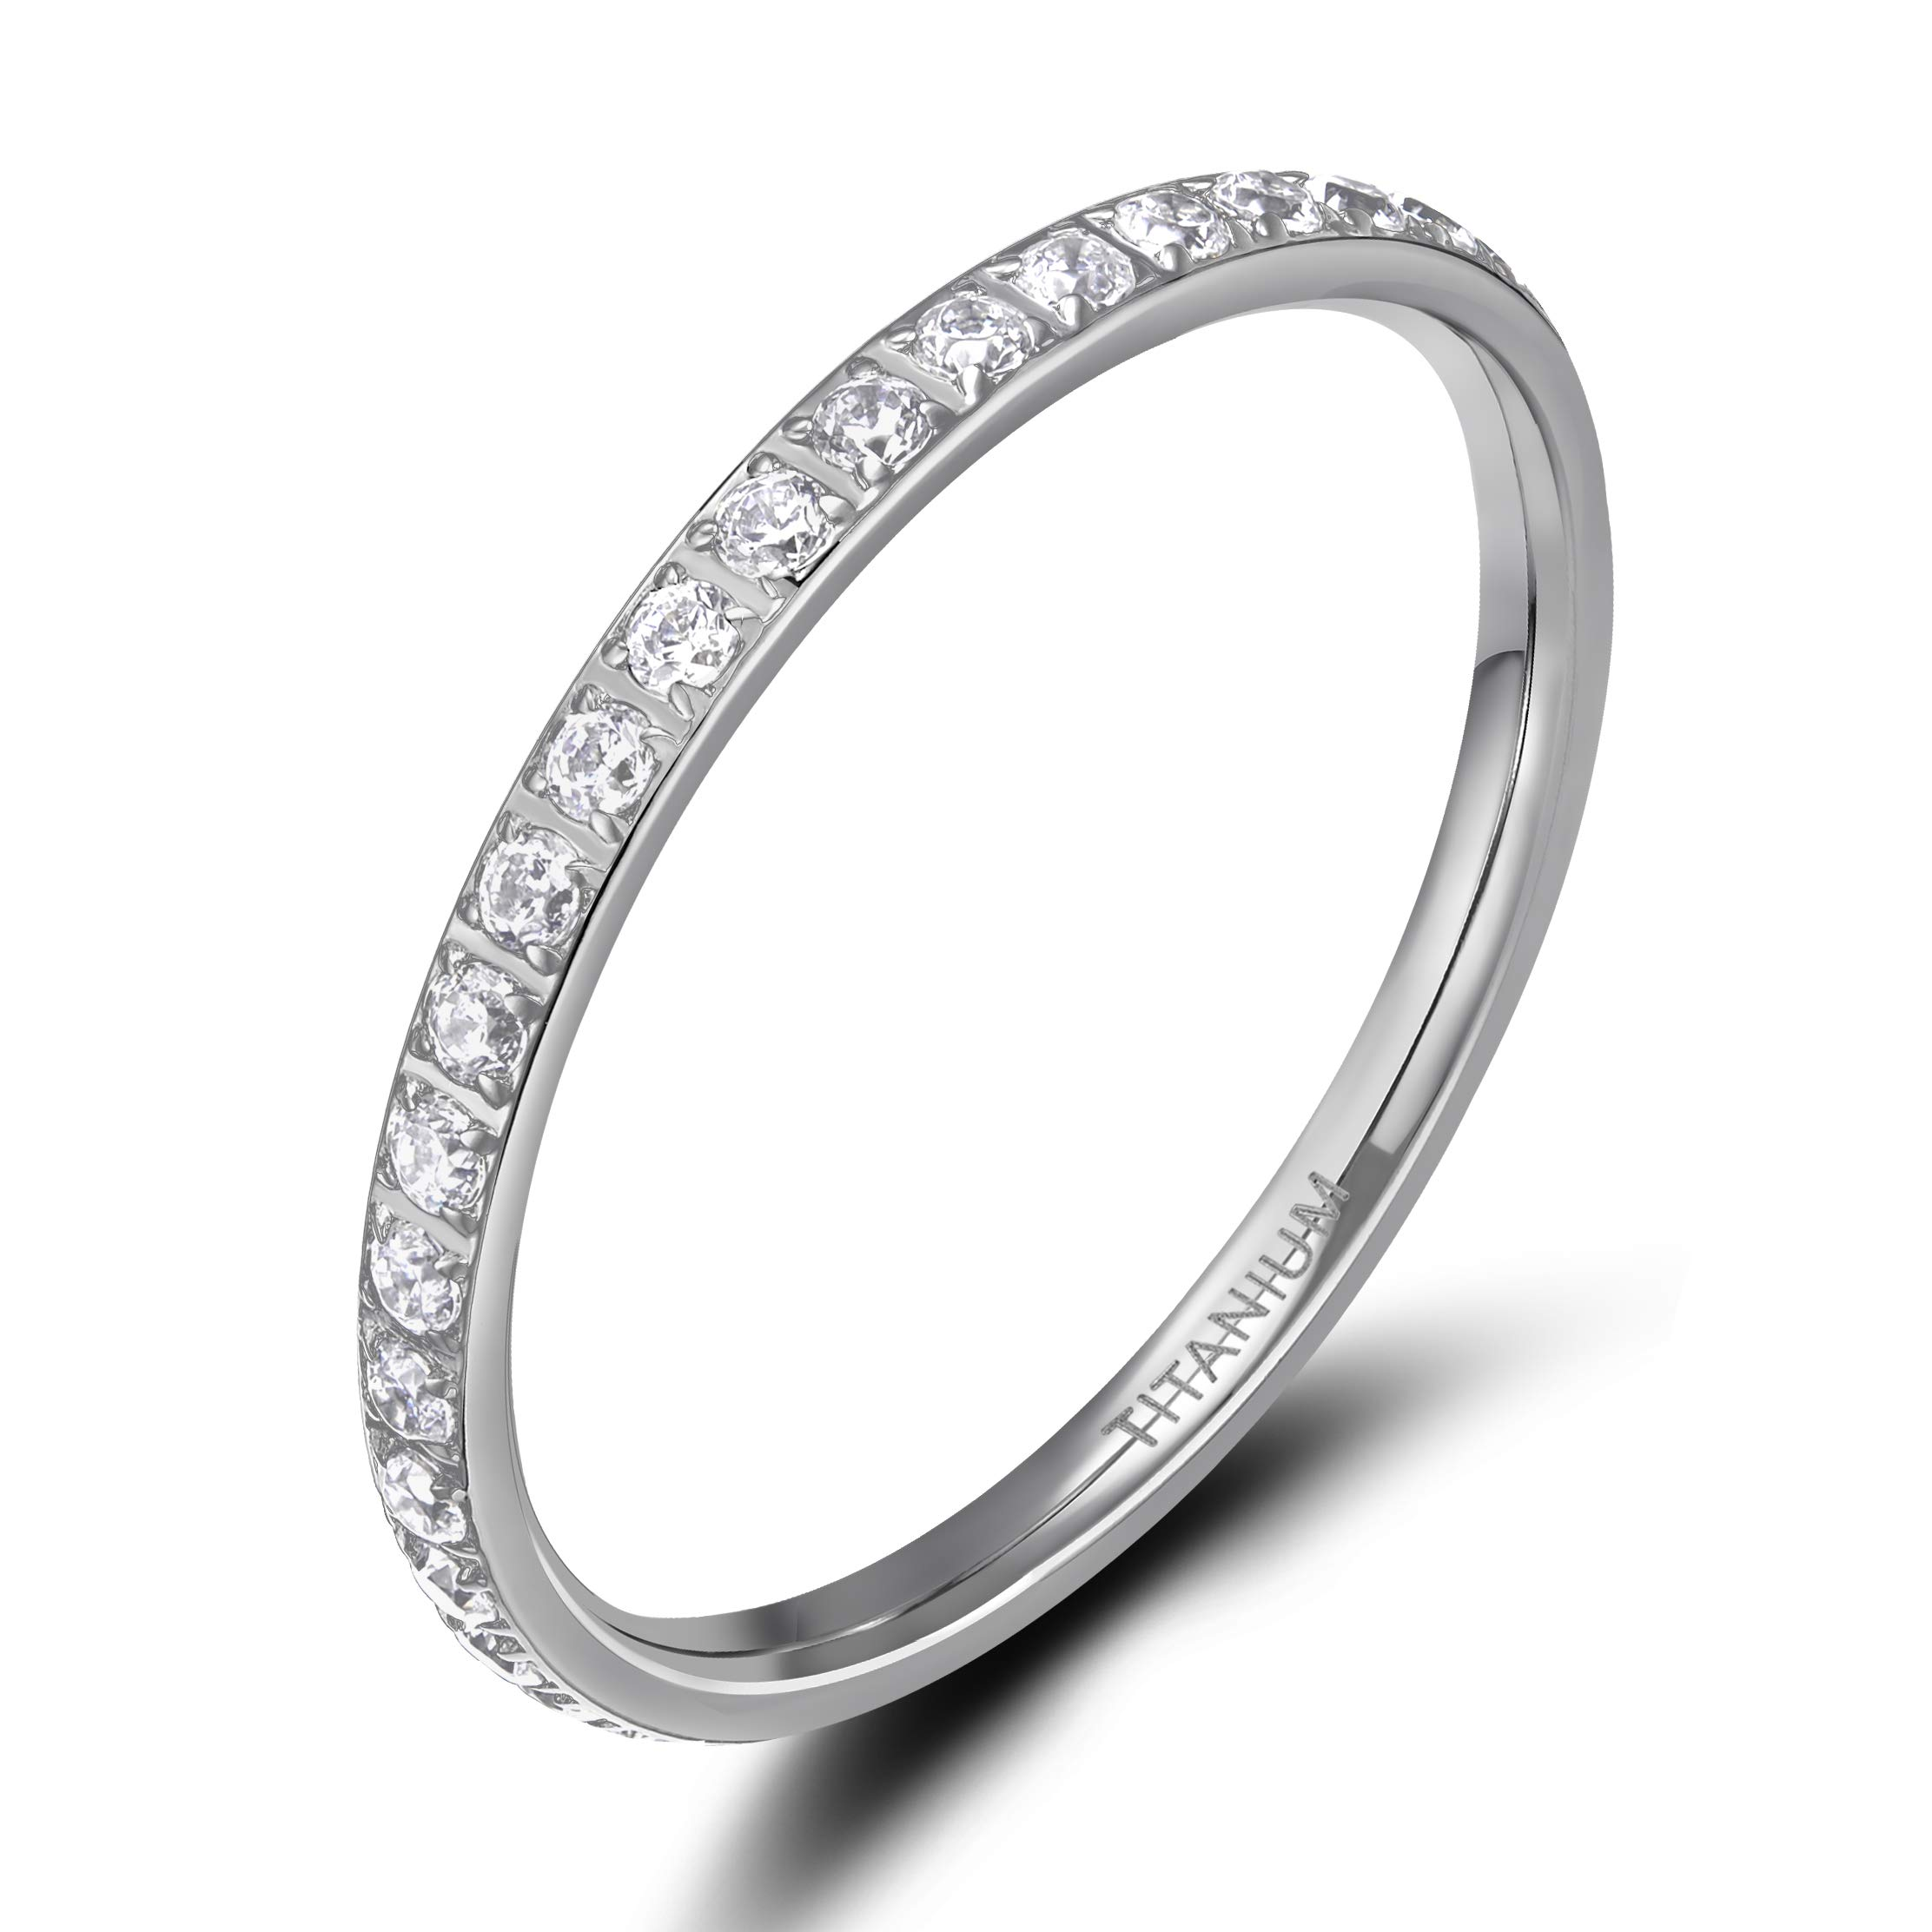 TIGRADE 2mm Women Titanium Eternity Ring Cubic Zirconia Anniversary Wedding Engagement Band Size 3-13, Silver, Size 7 by TIGRADE